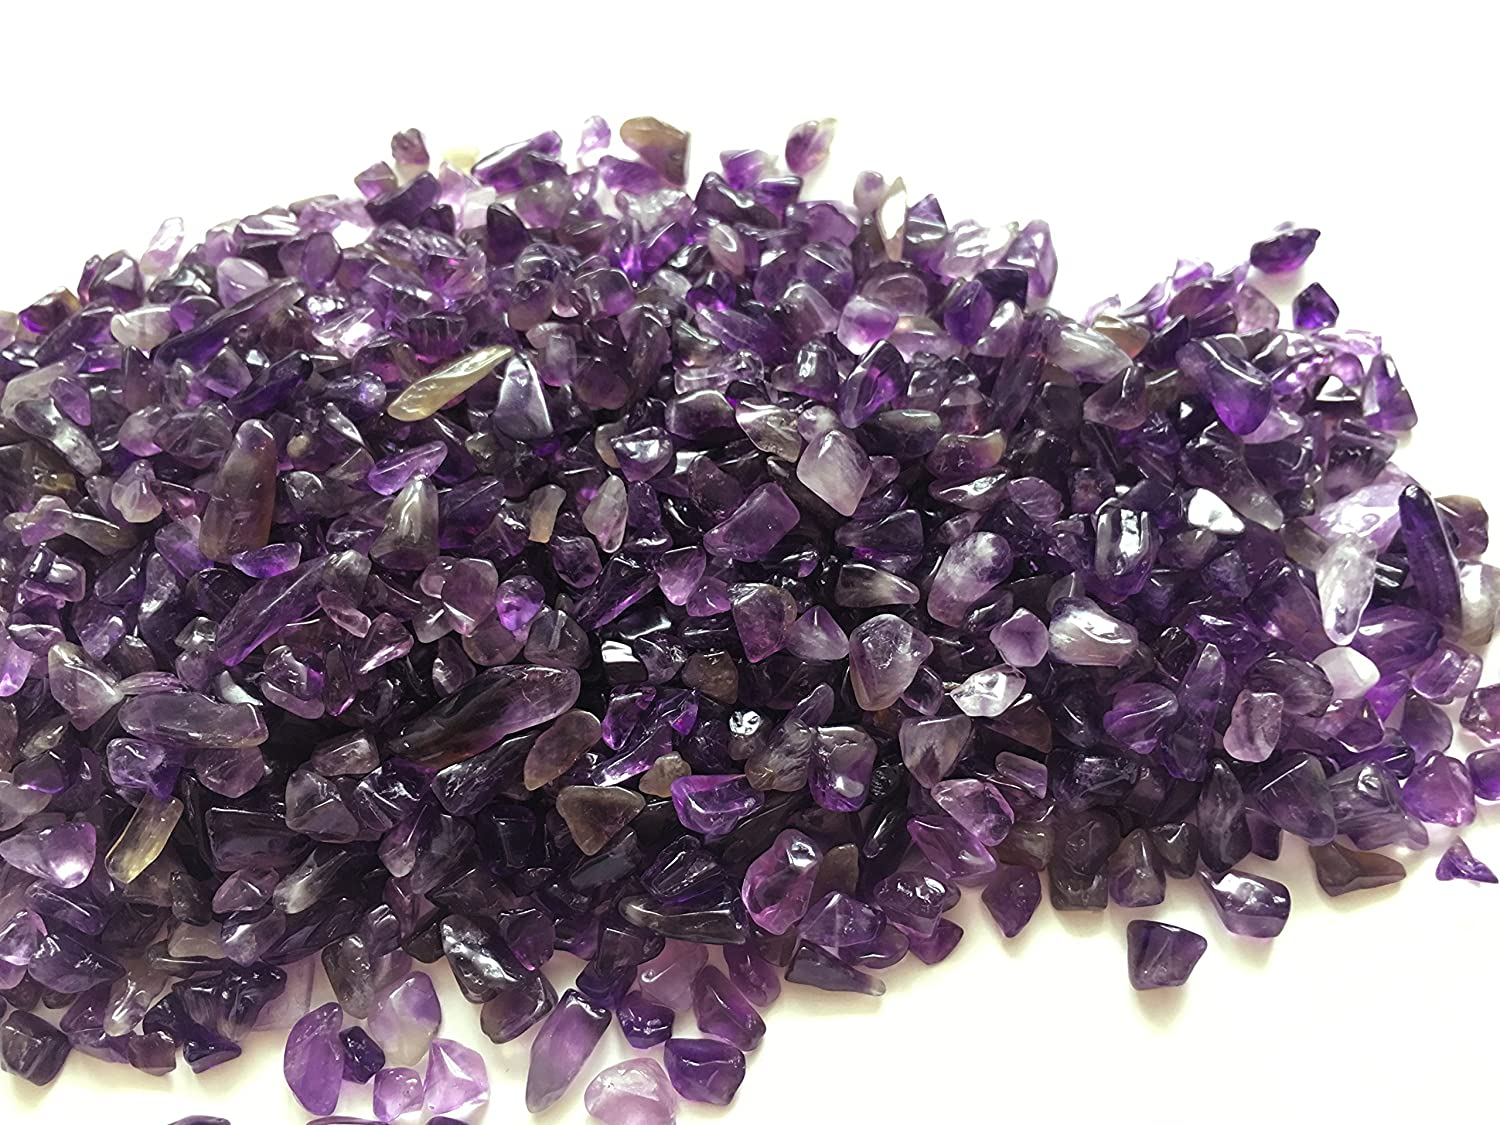 Zungtin 1 lb Amethyst Small Tumbled Chips Crushed Stone Healing Reiki Crystal Jewelry Making Home